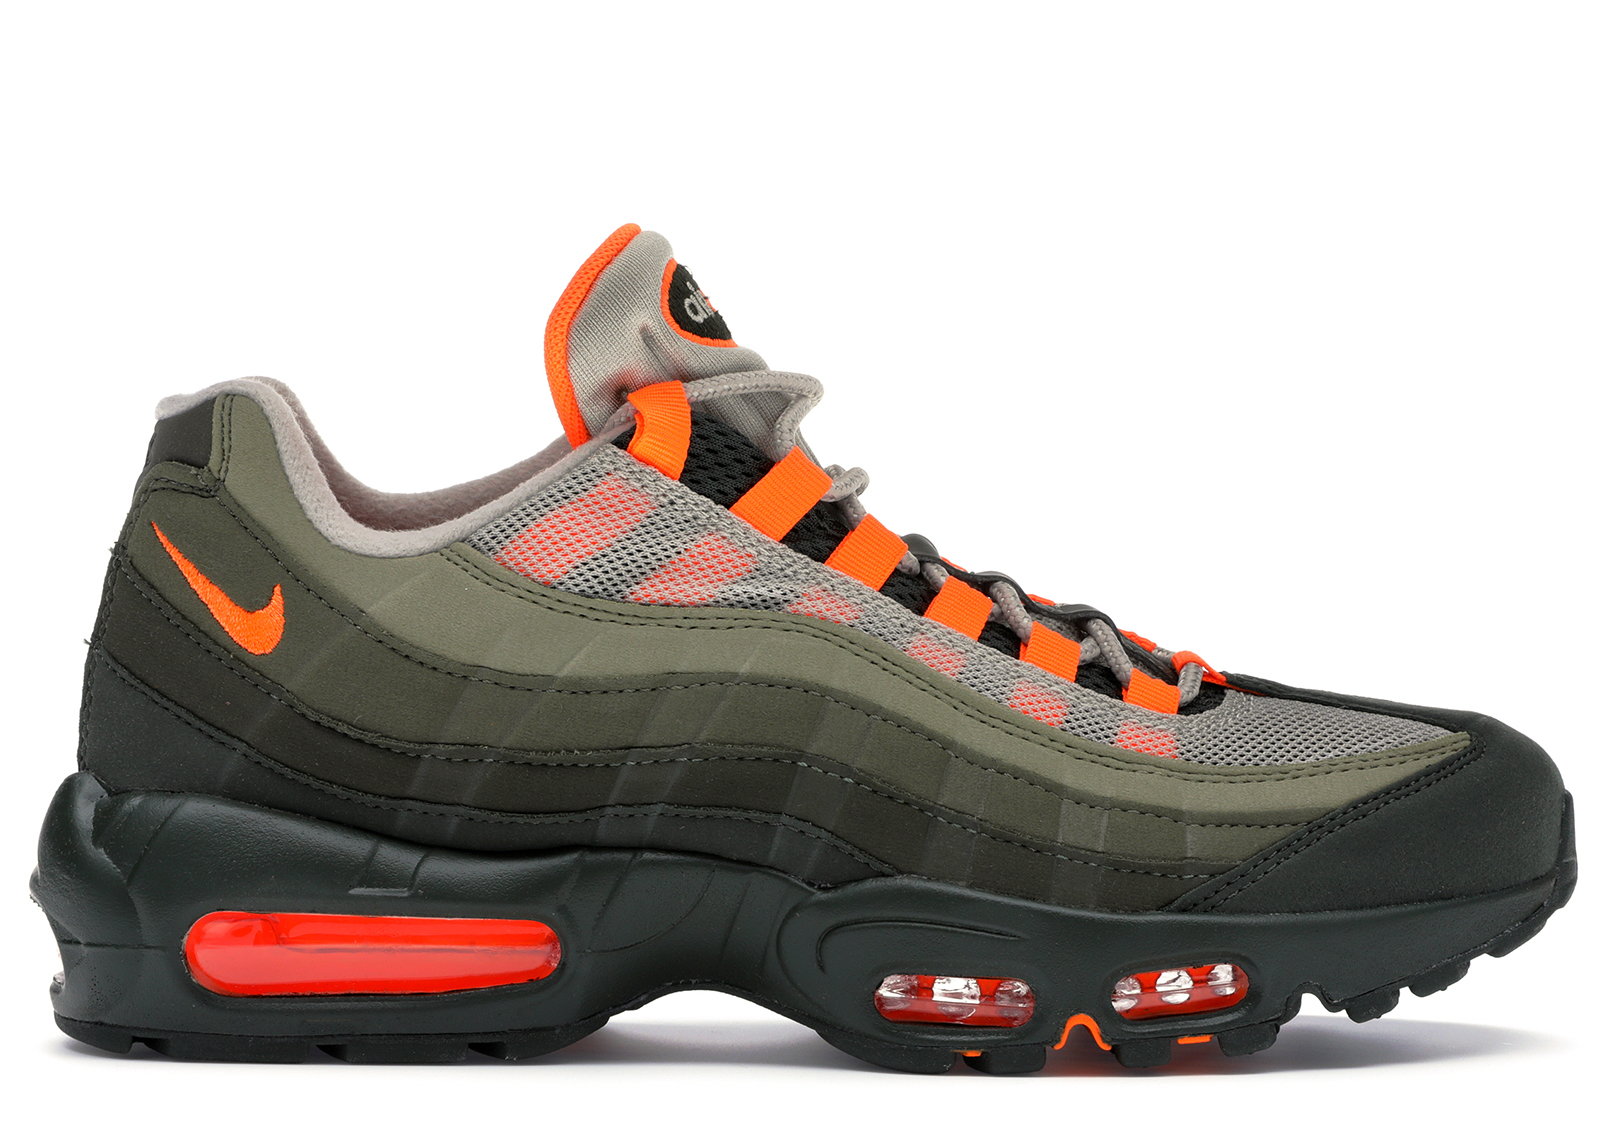 Buy Nike Air Max 95 Shoes & Deadstock Sneakers